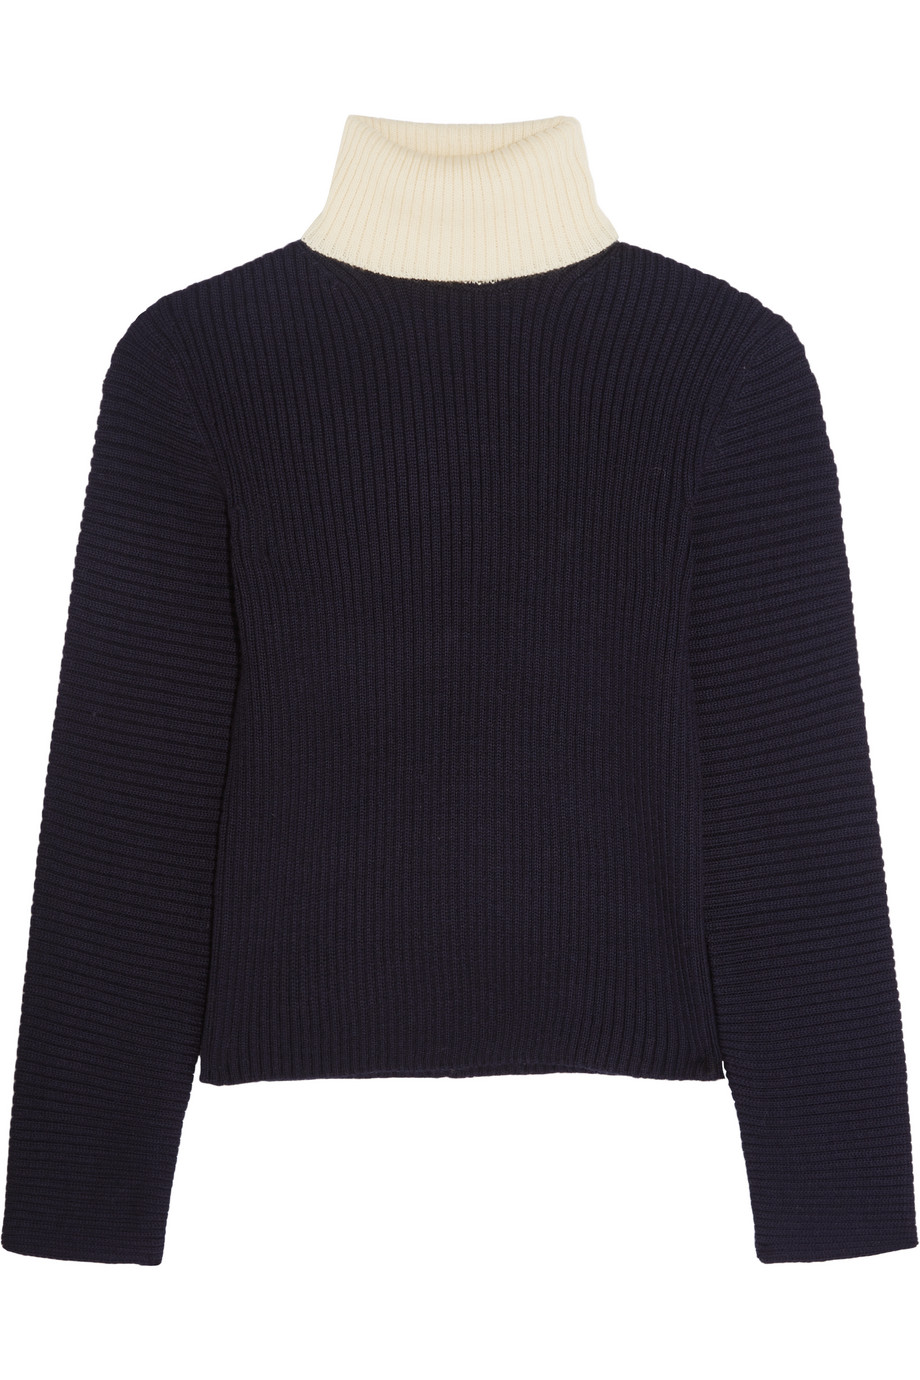 Acne Studios Bryn Two-Tone Ribbed Wool Turtleneck Sweater, Midnight Blue, Women's, Size: L